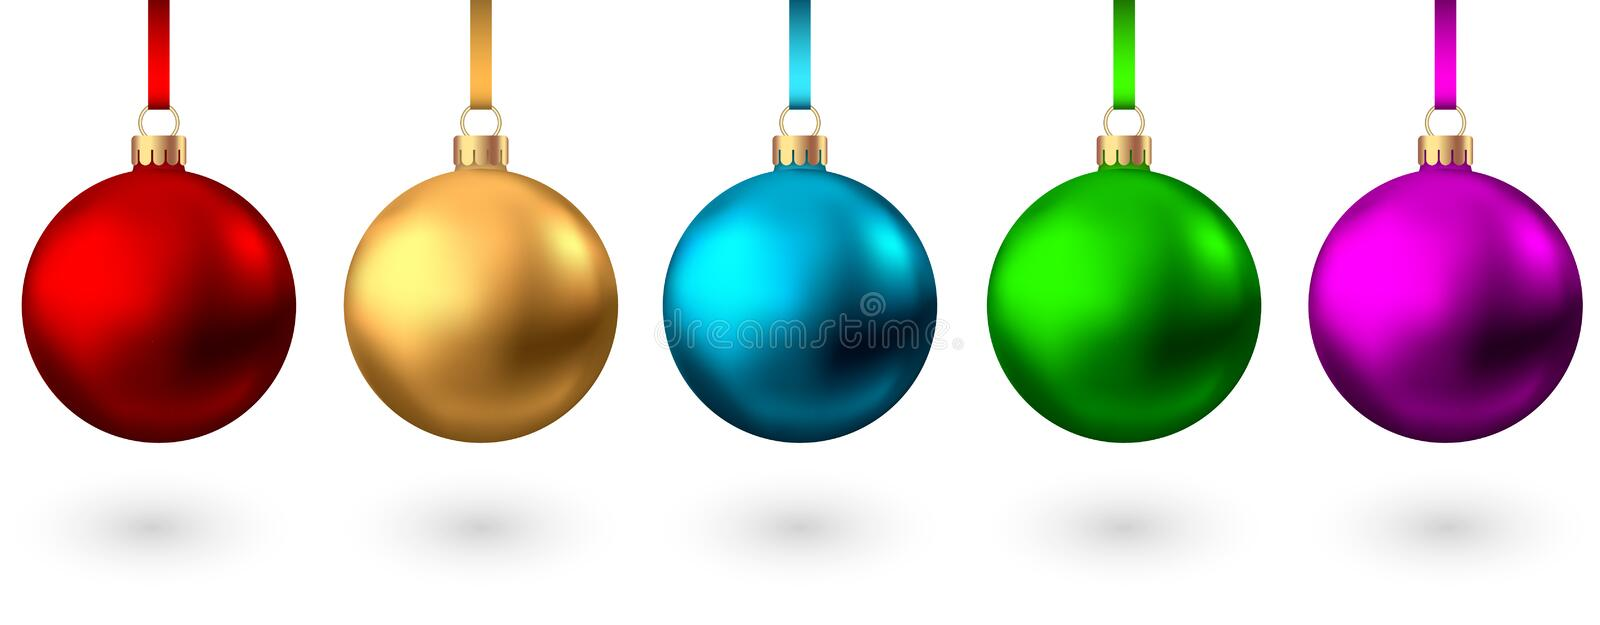 Realistic  red, gold, blue, green, pink, purple   Christmas  balls stock illustration